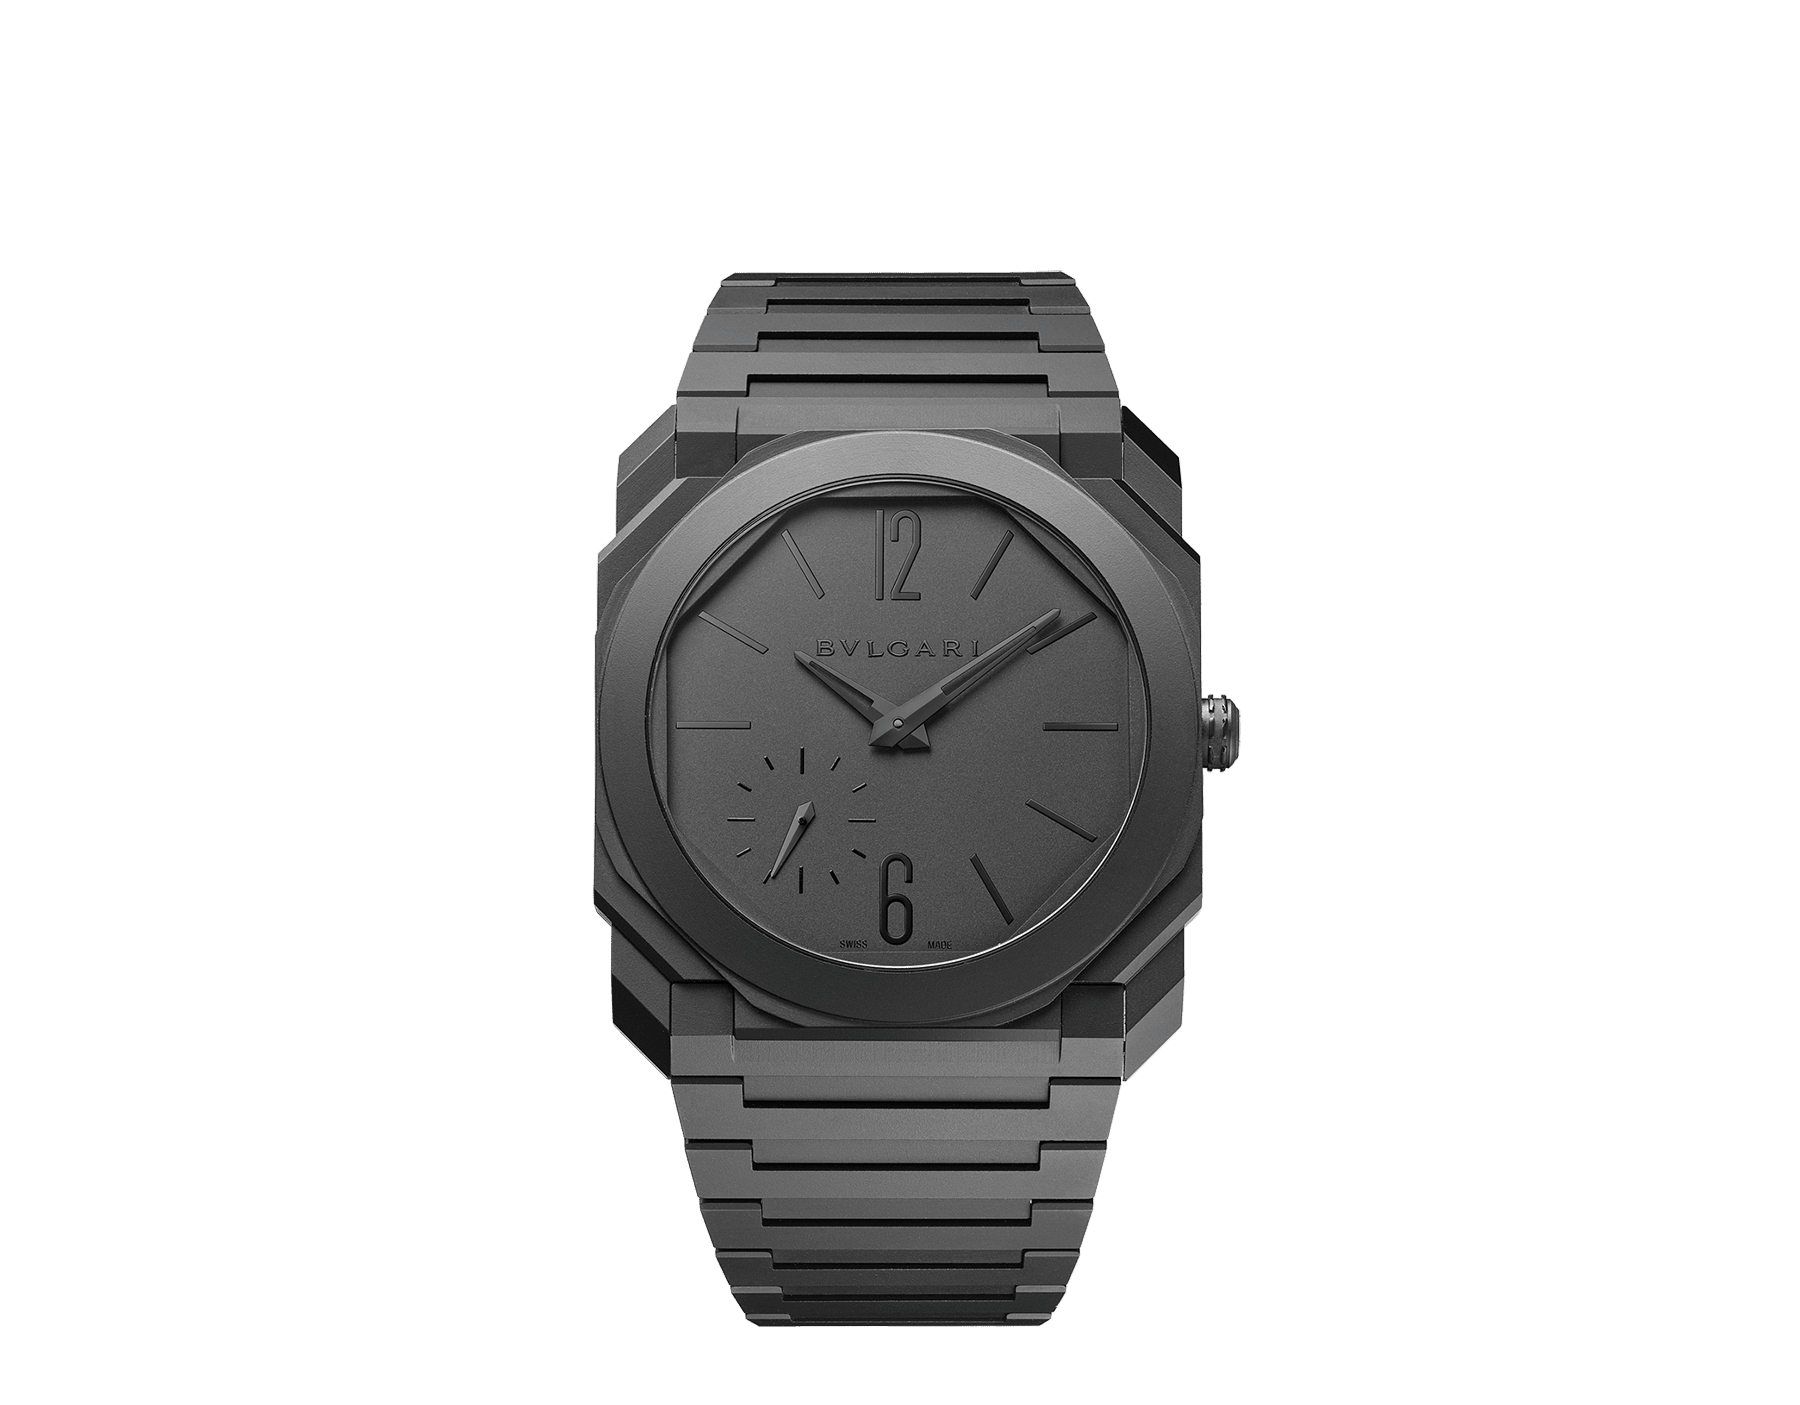 Octo Finissimo Automatic watch in black sandblasted ceramic with extra-thin mechanical manufacture movement, automatic winding with platinum microrotor, small seconds and transparent case back. Water-resistant up to 30 metres 103077 image 1